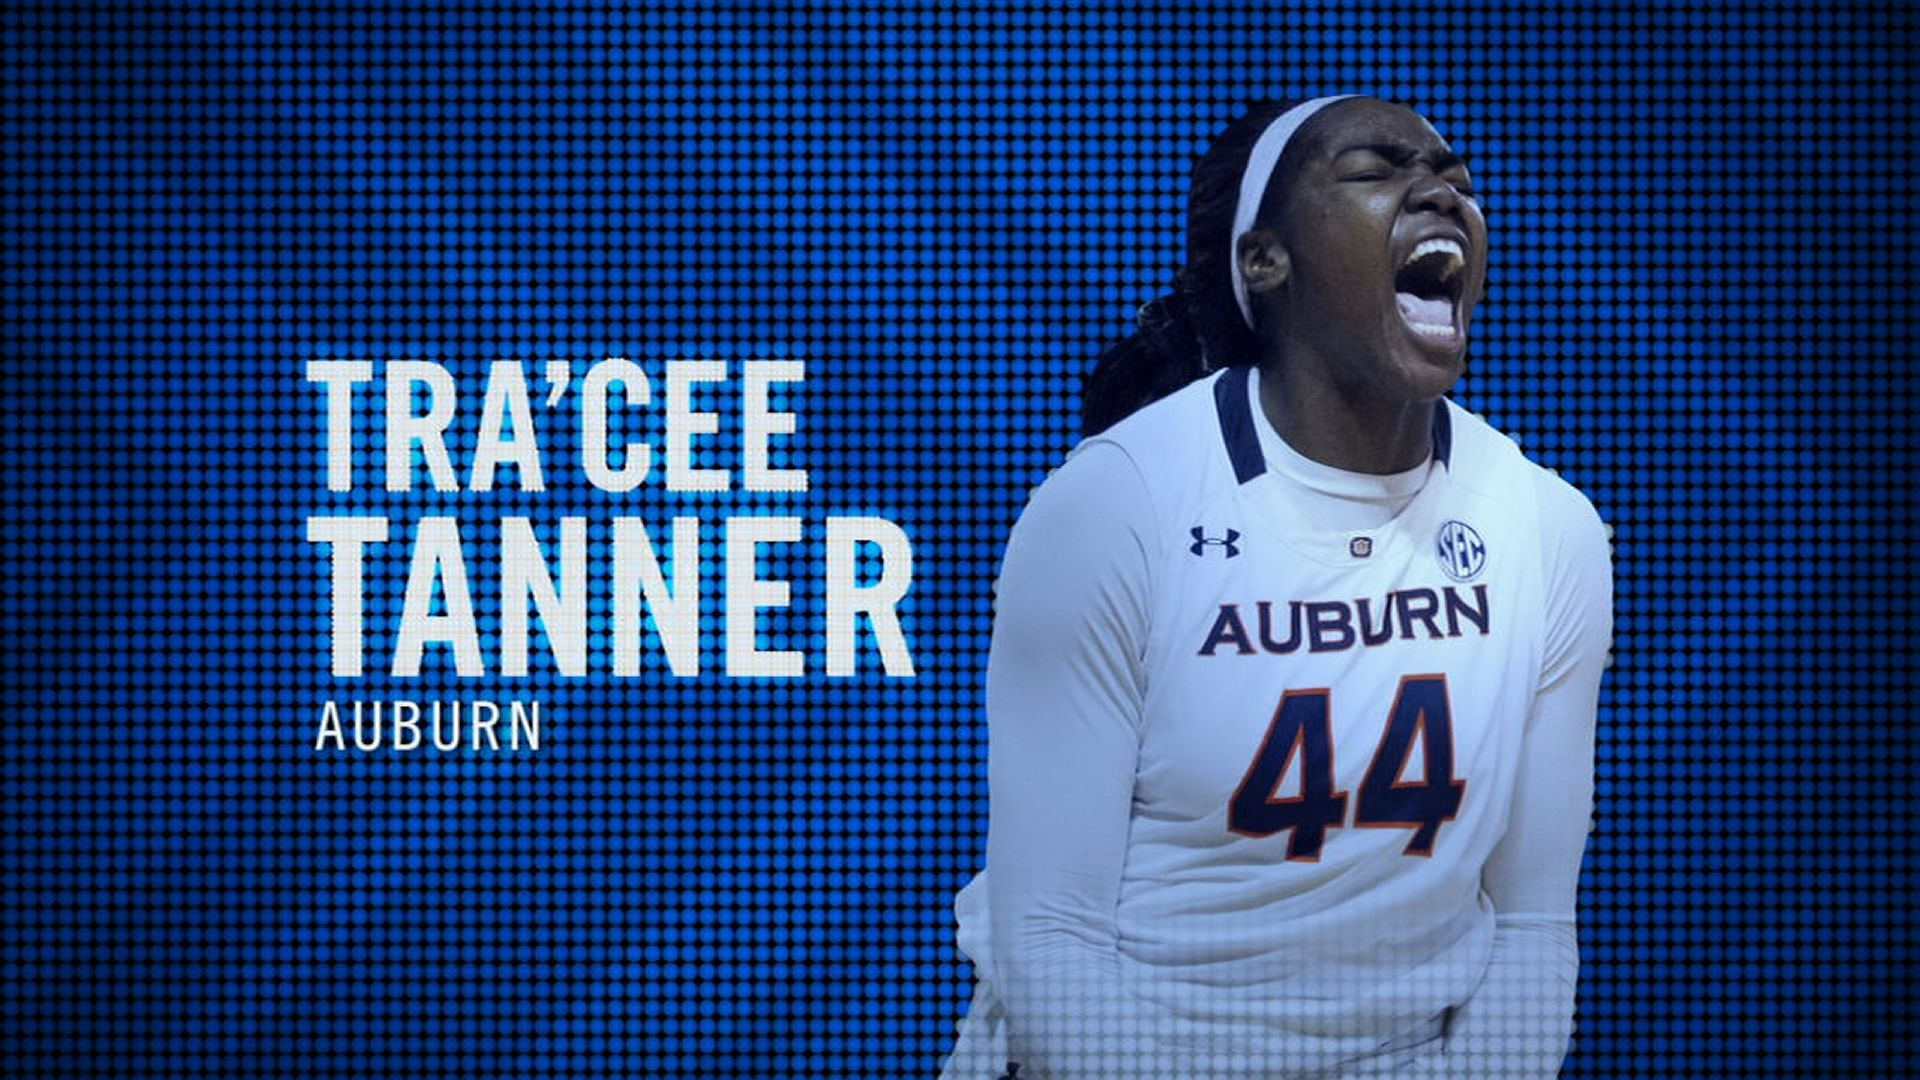 I am the SEC: Auburn's Tra'Cee Tanner